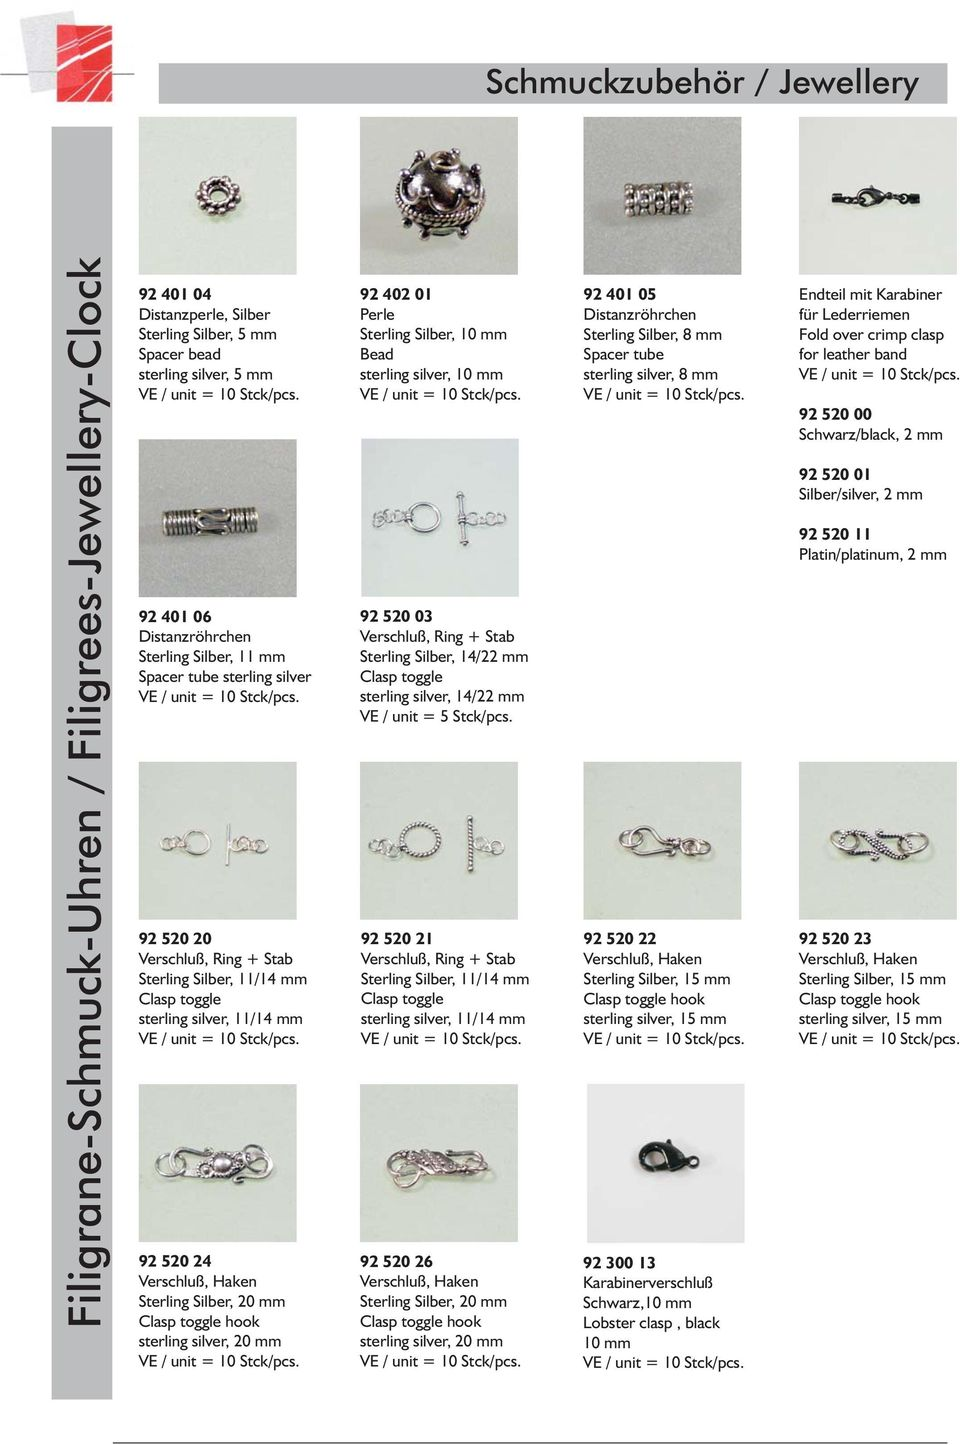 toggle sterling silver, 14/22 mm VE / unit = 5 Stck/pcs.